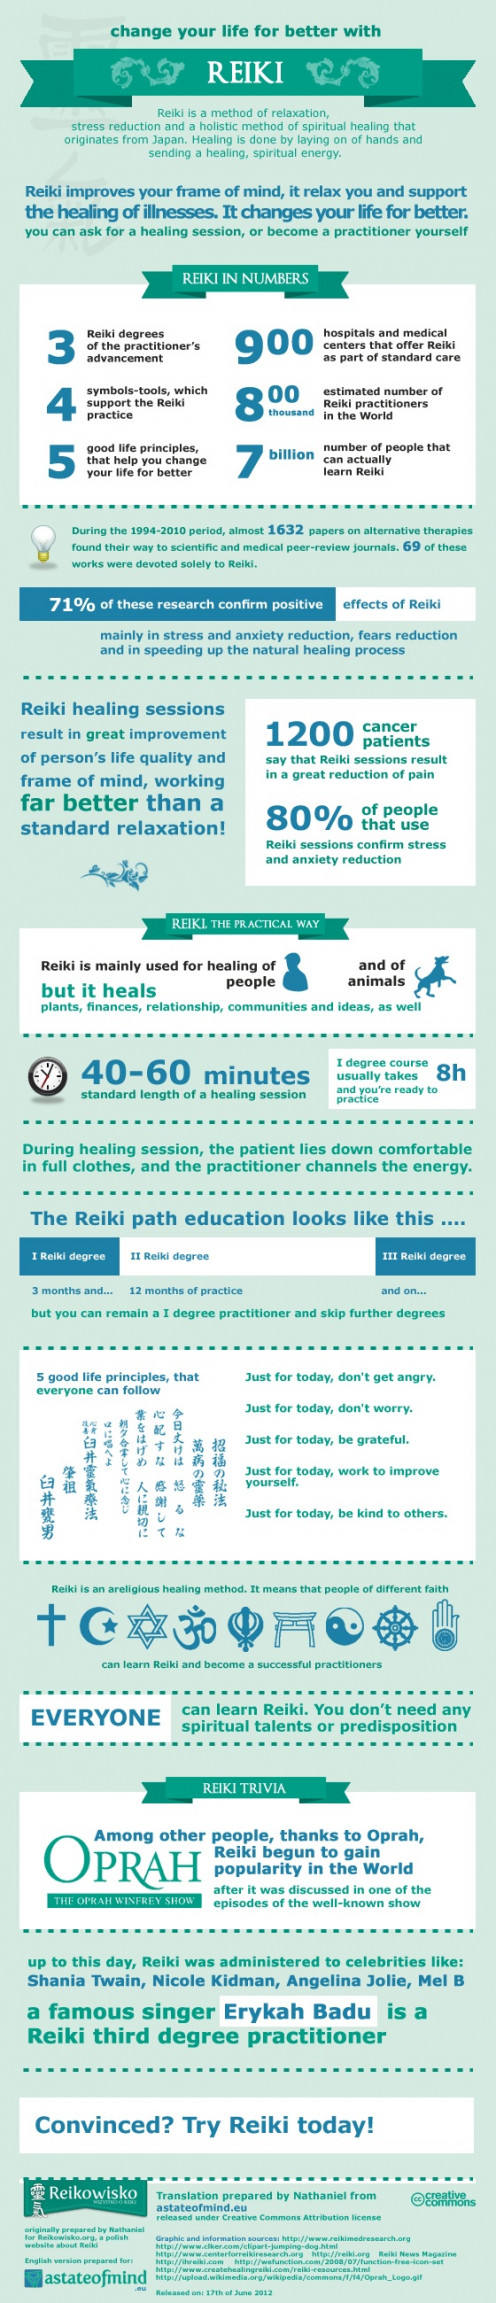 An infographic introducing to Reiki.